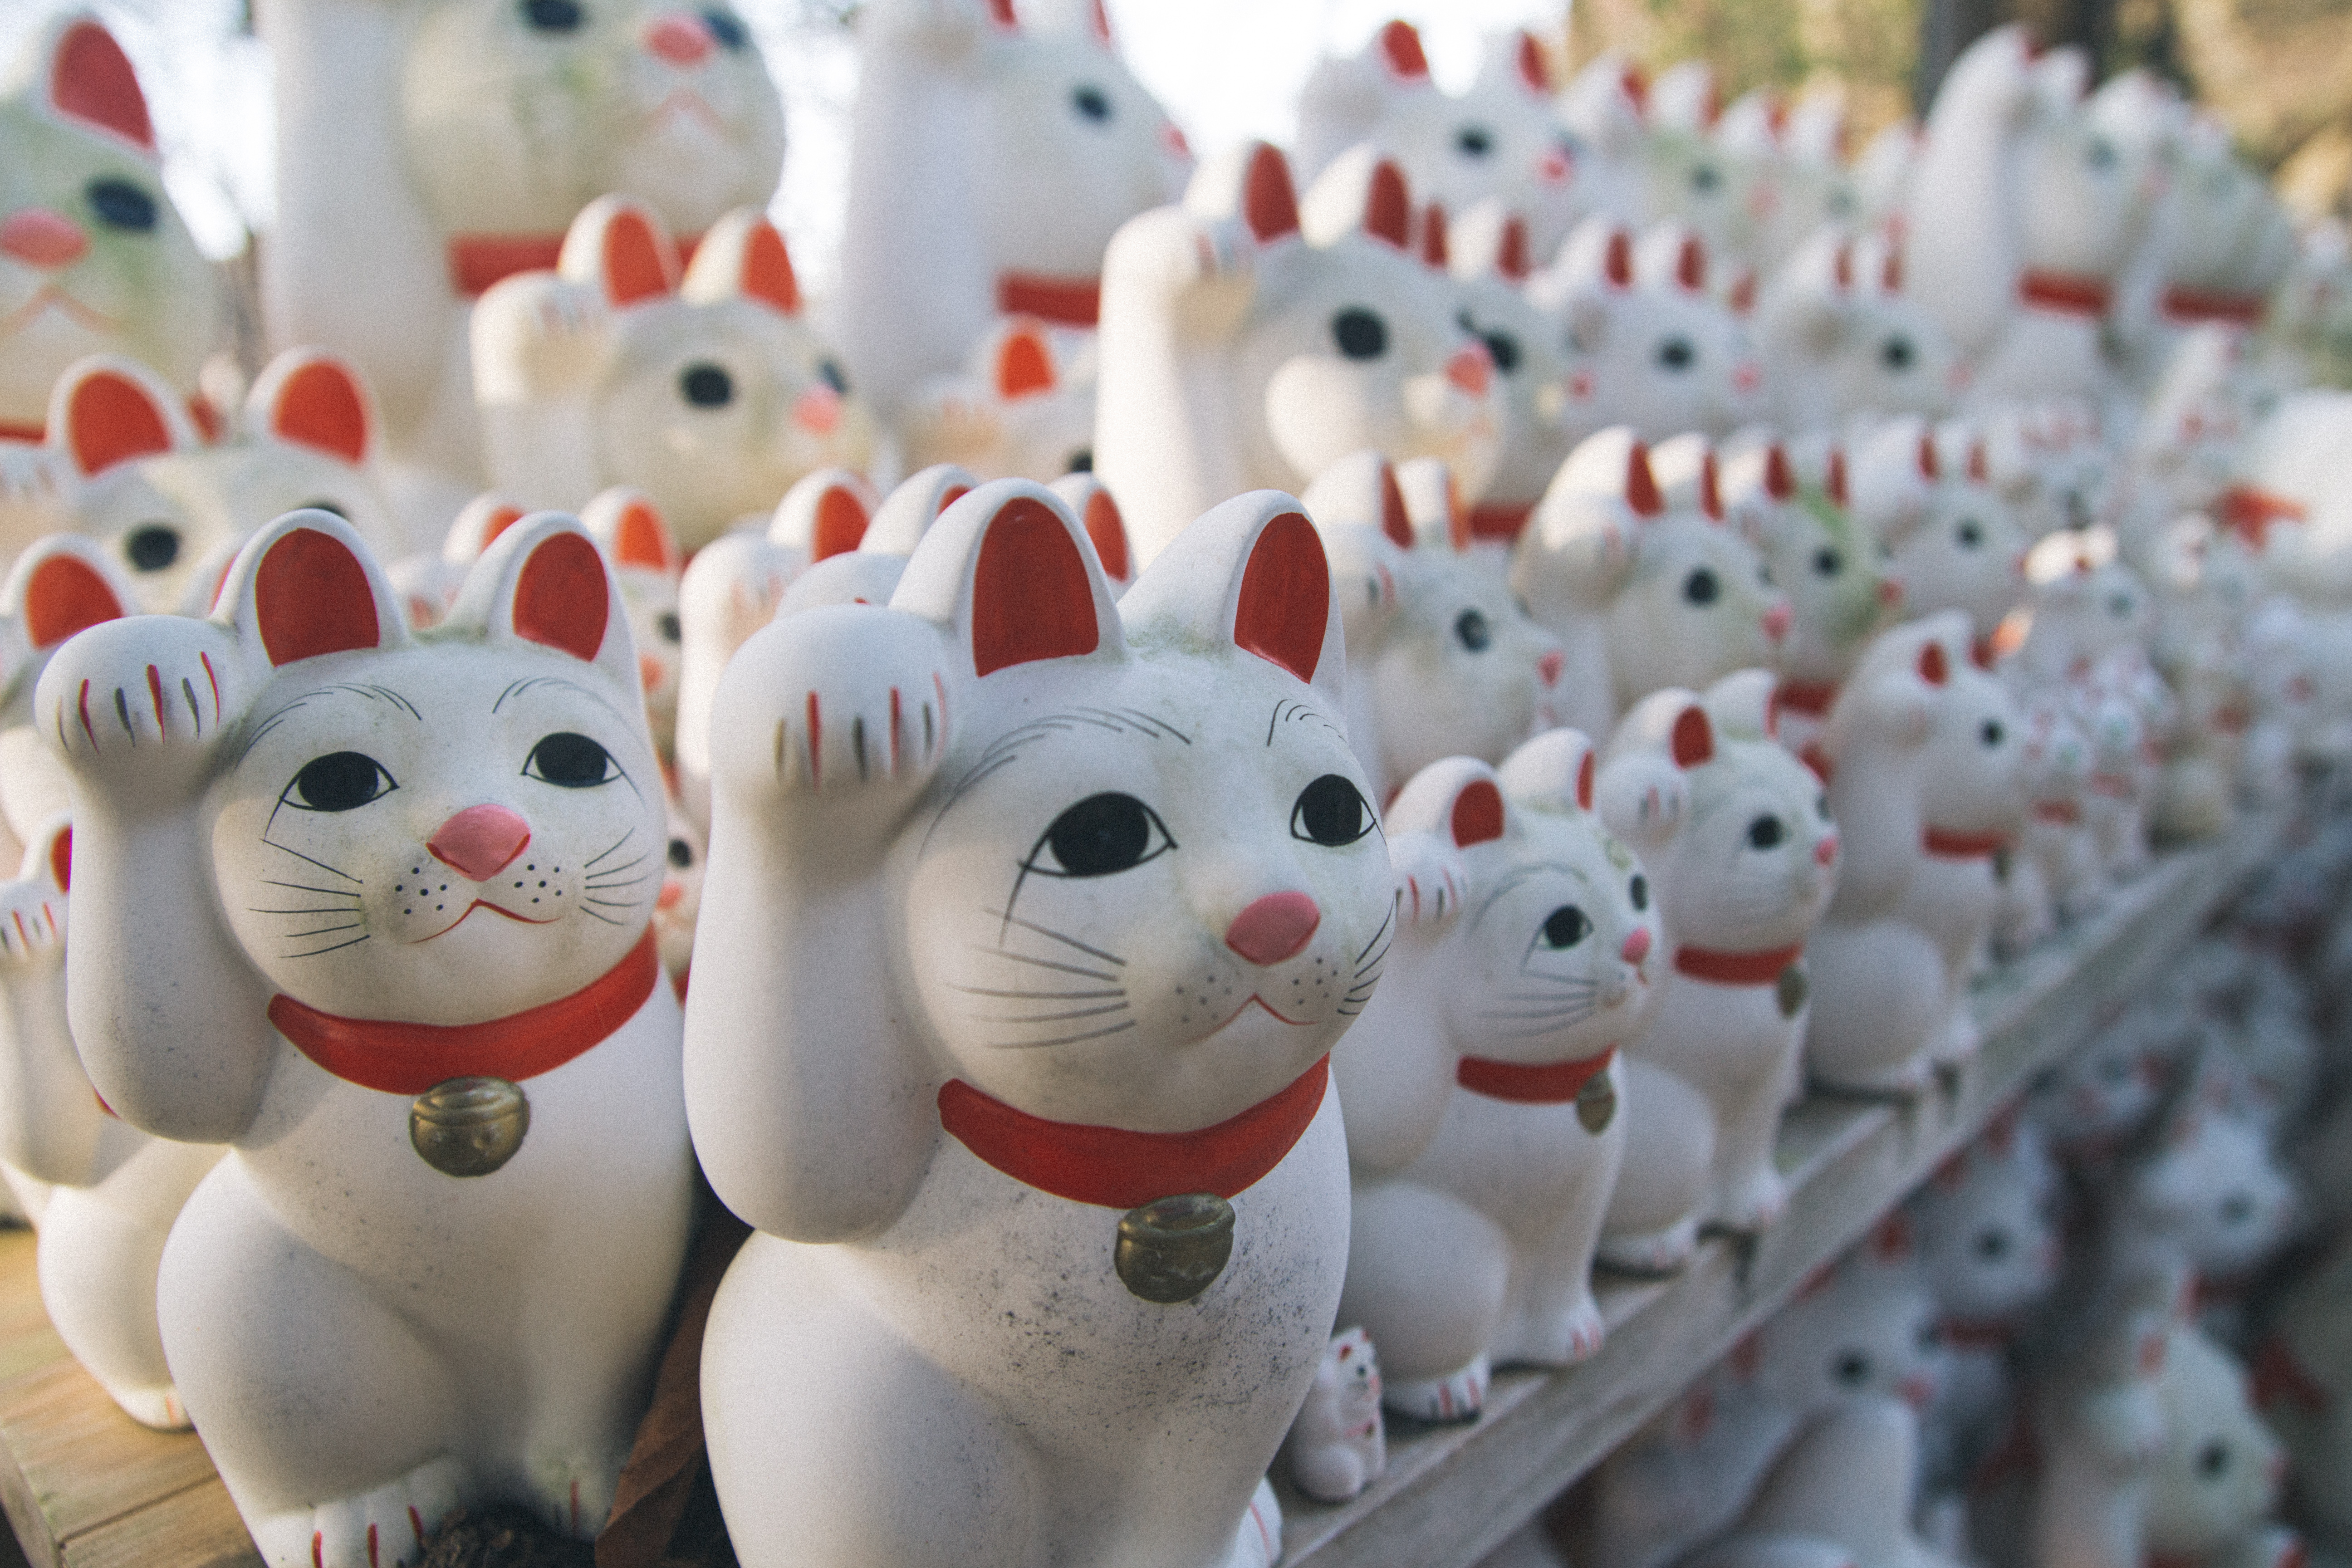 The waving cats of Gotokuji Temple make a well-loved attraction on TripAdvisor Japan